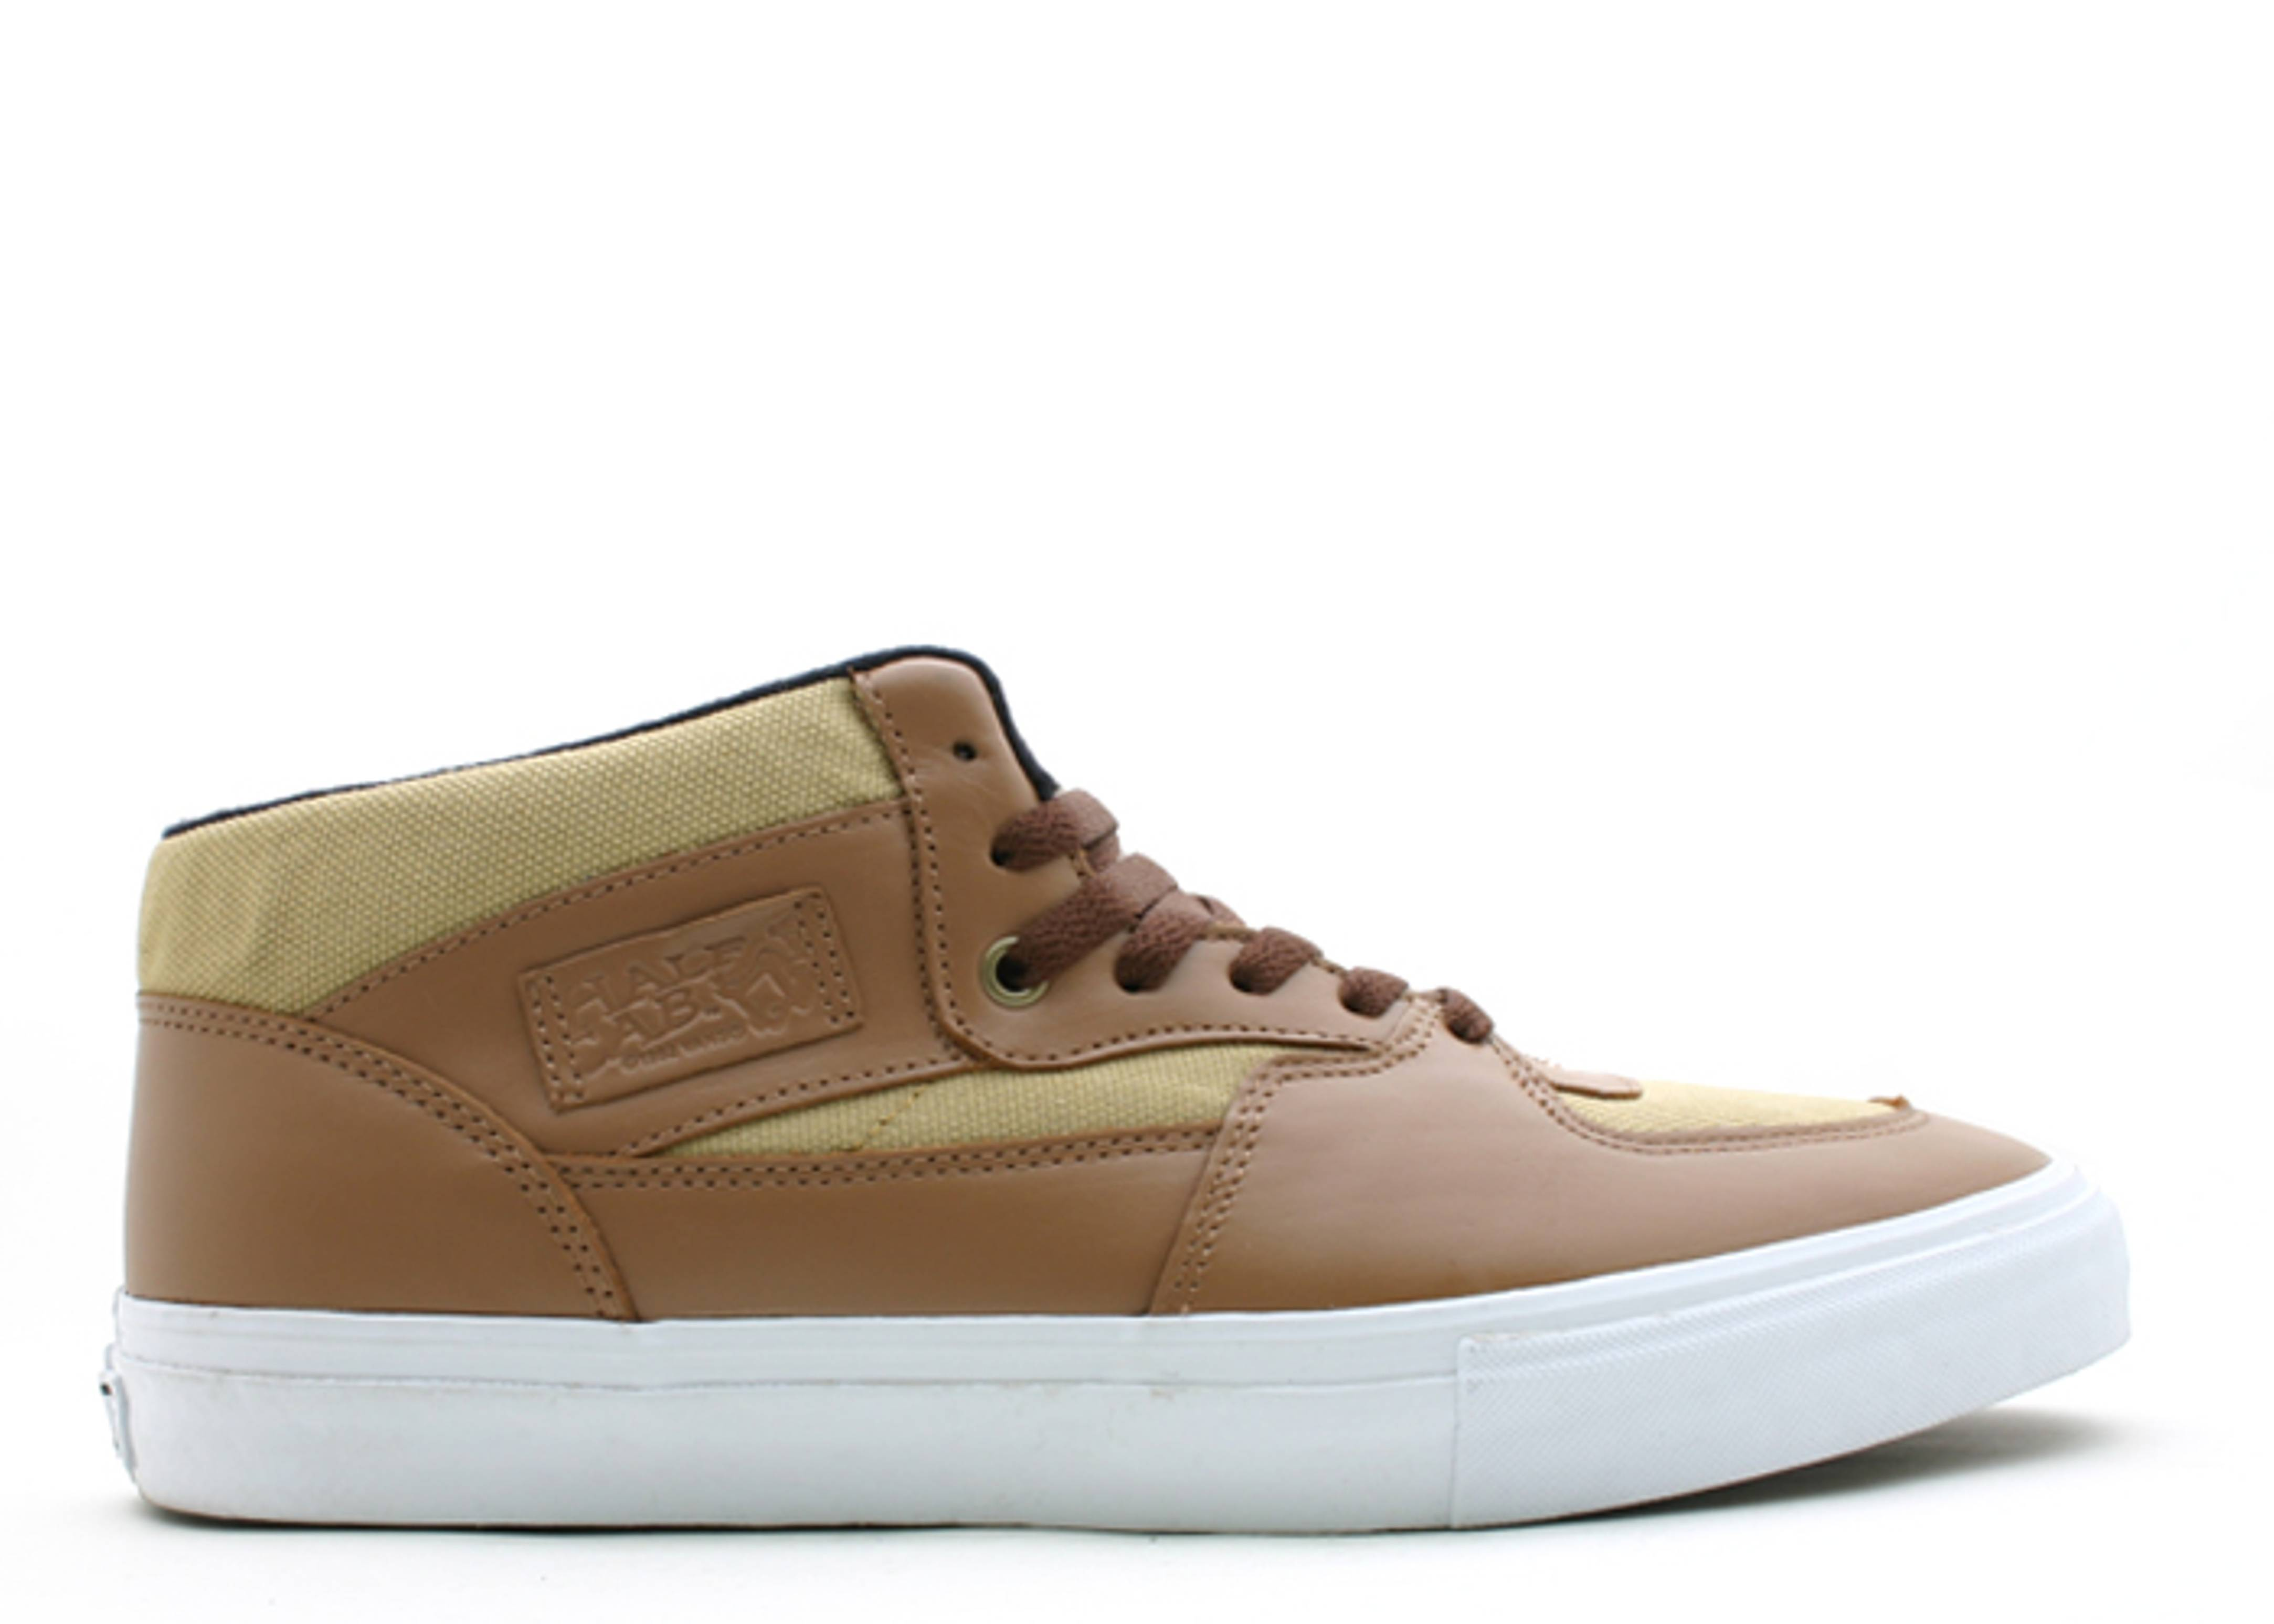 halfcab s gusseted